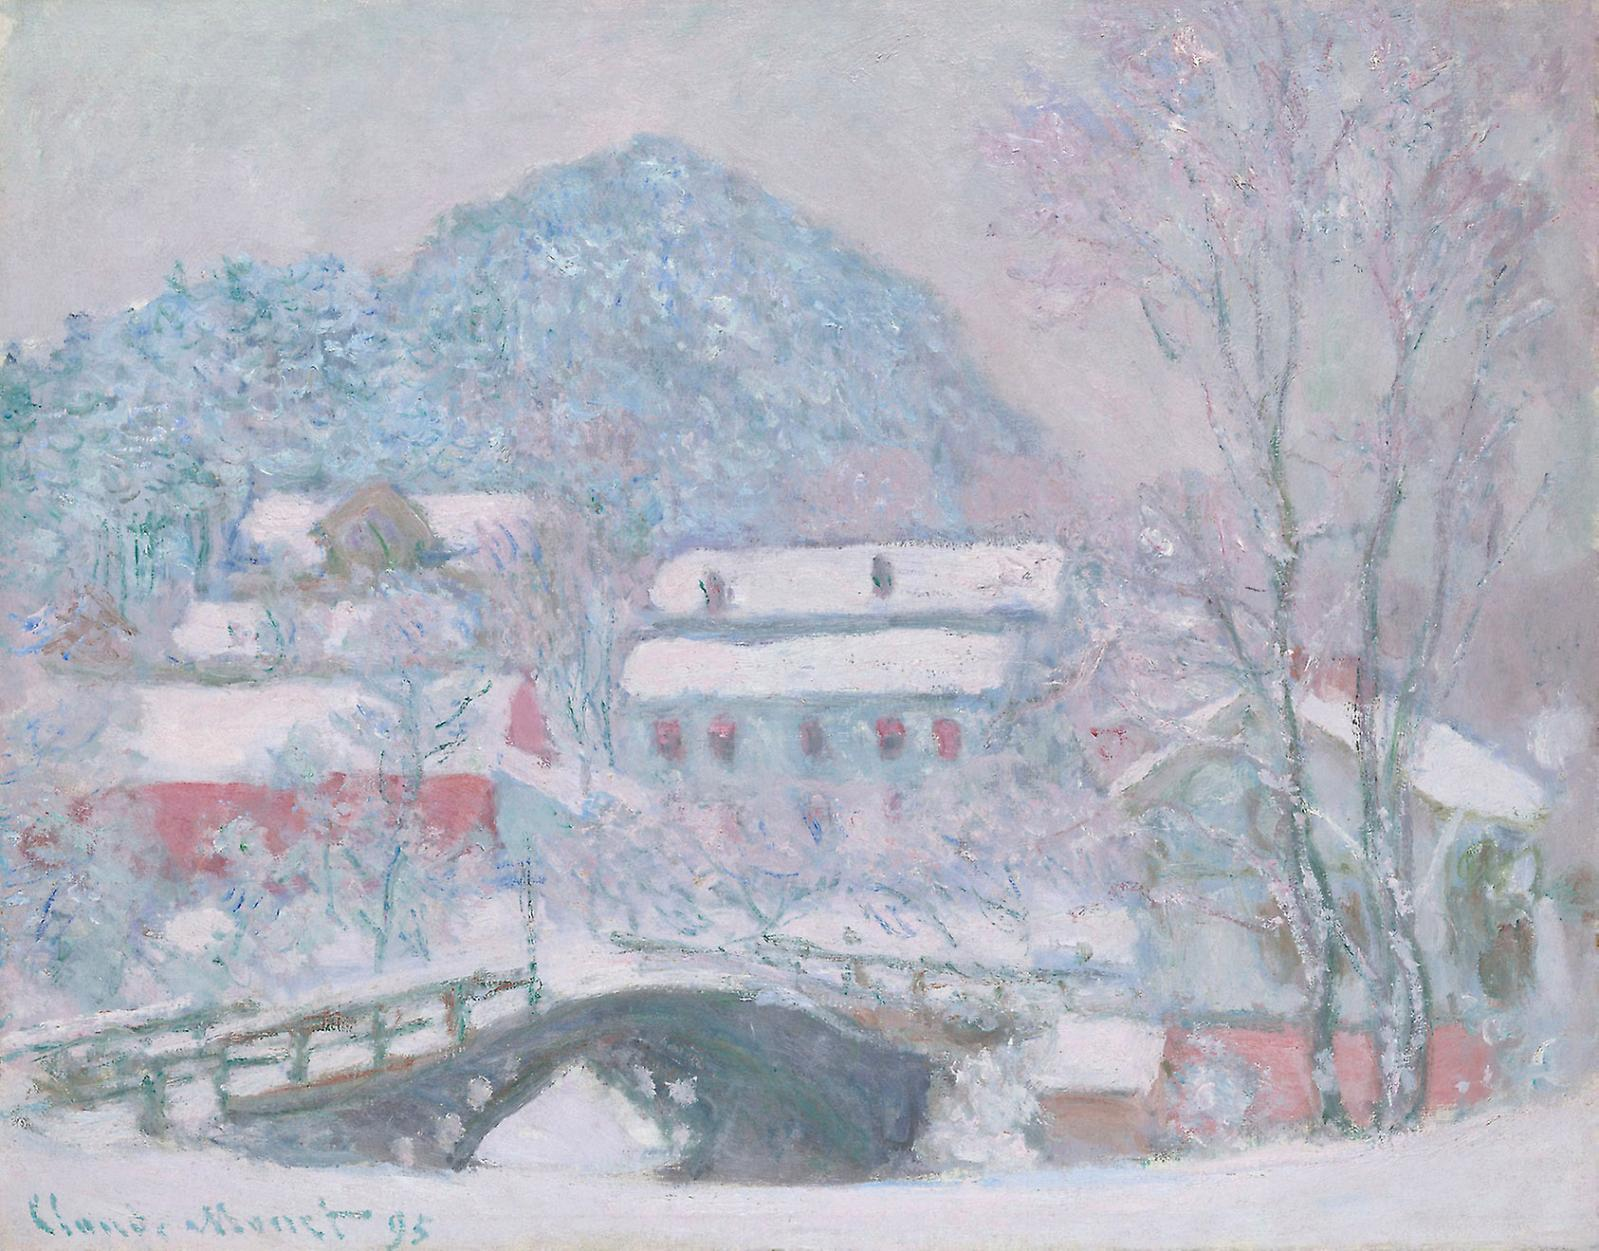 Claude Monet, Sandvika, Norway, 1895, oil on canvas.Courtesy of The Art Institute of Chicago, Gift of Bruce Borland.